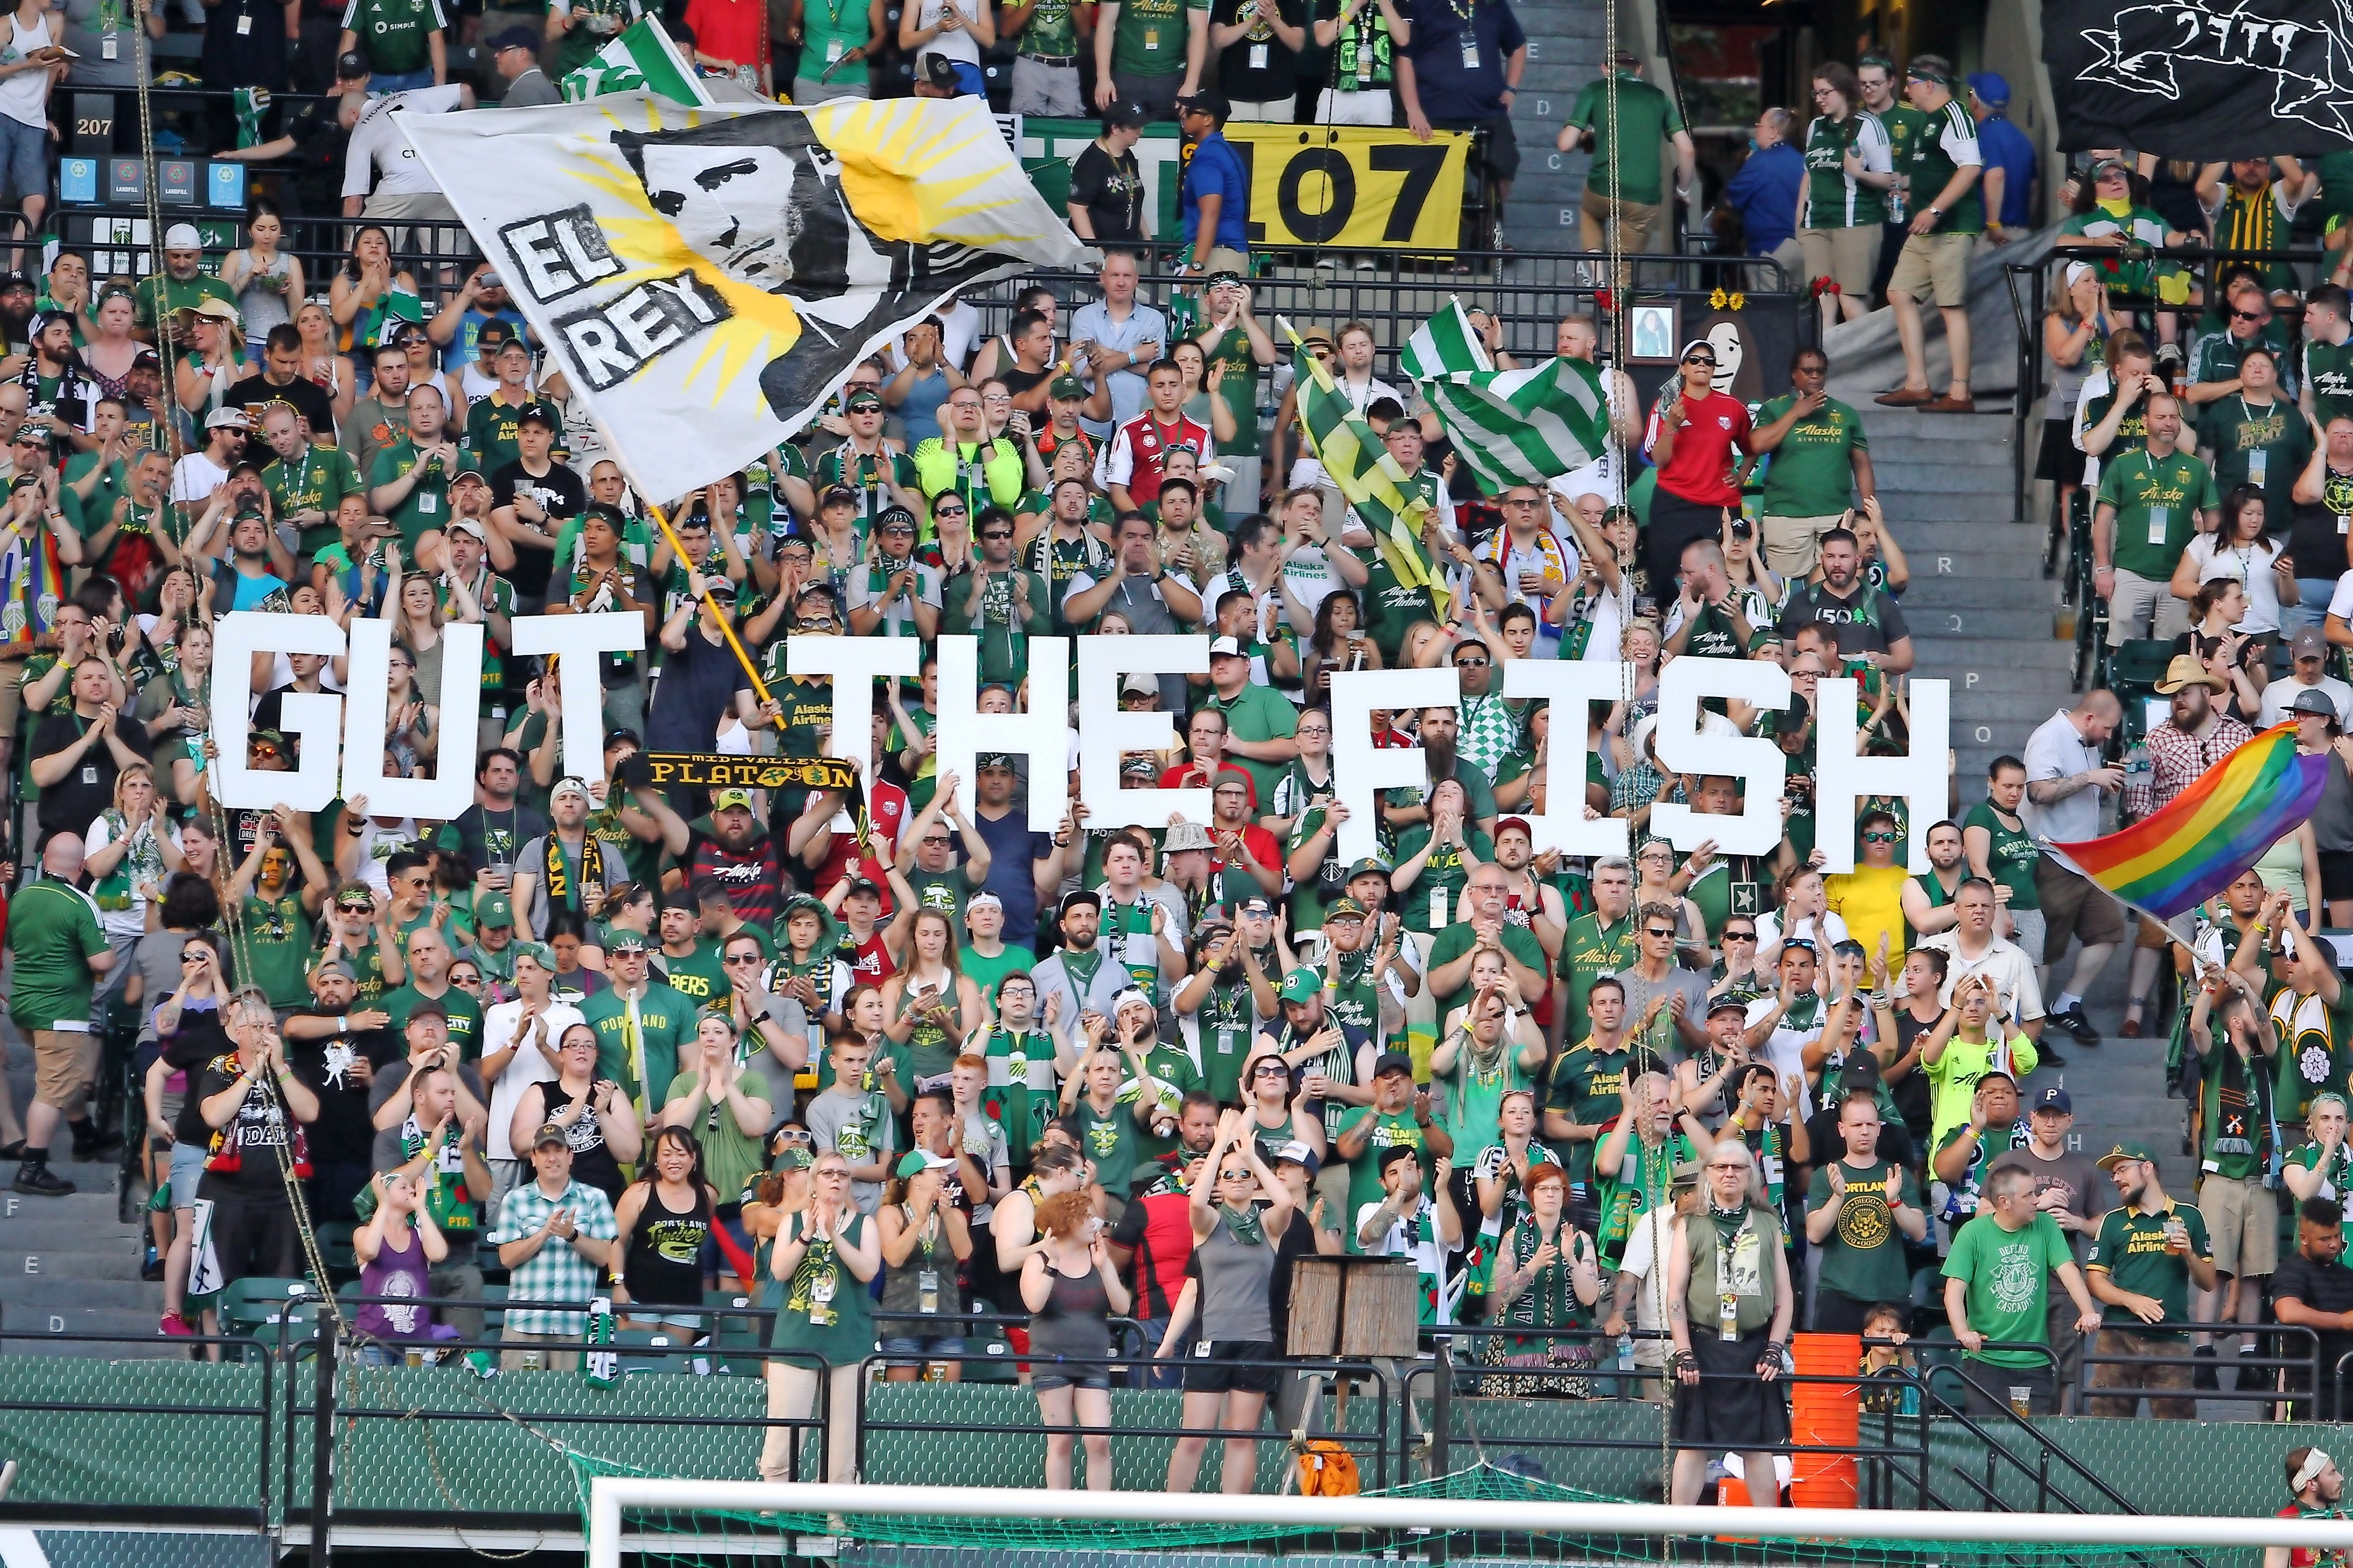 The Portland Timbers fans cheer during an MLS soccer game against the Seattle Sounders FC on Sunday, June 25, 2017, at Providence Park in Portland, Ore. (Pete Christopher/The Oregonian via AP)